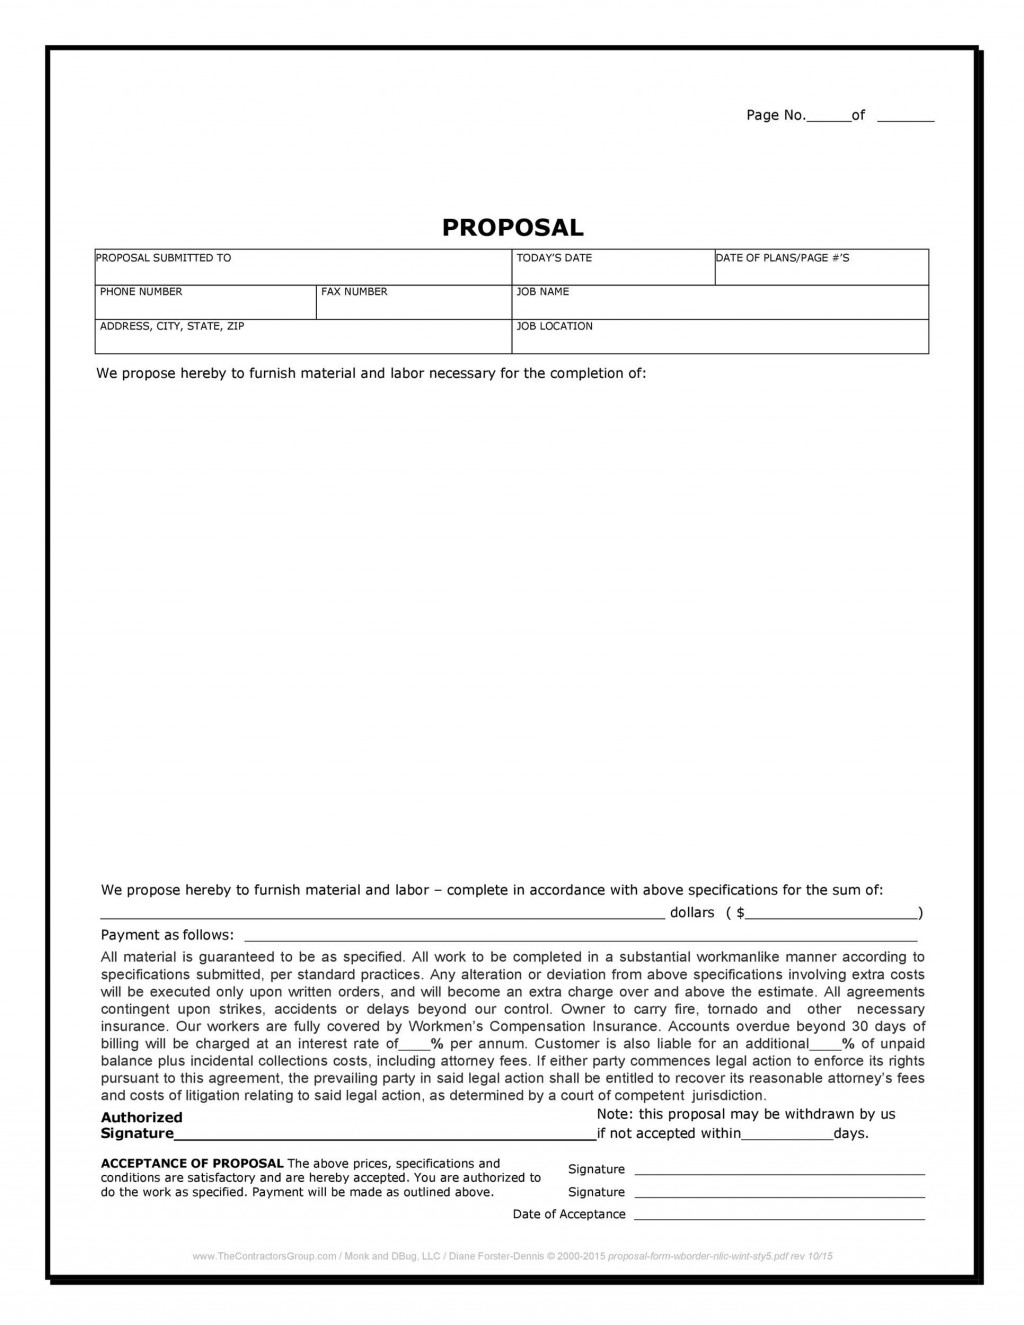 009 Archaicawful Construction Job Proposal Template Design  ExampleLarge